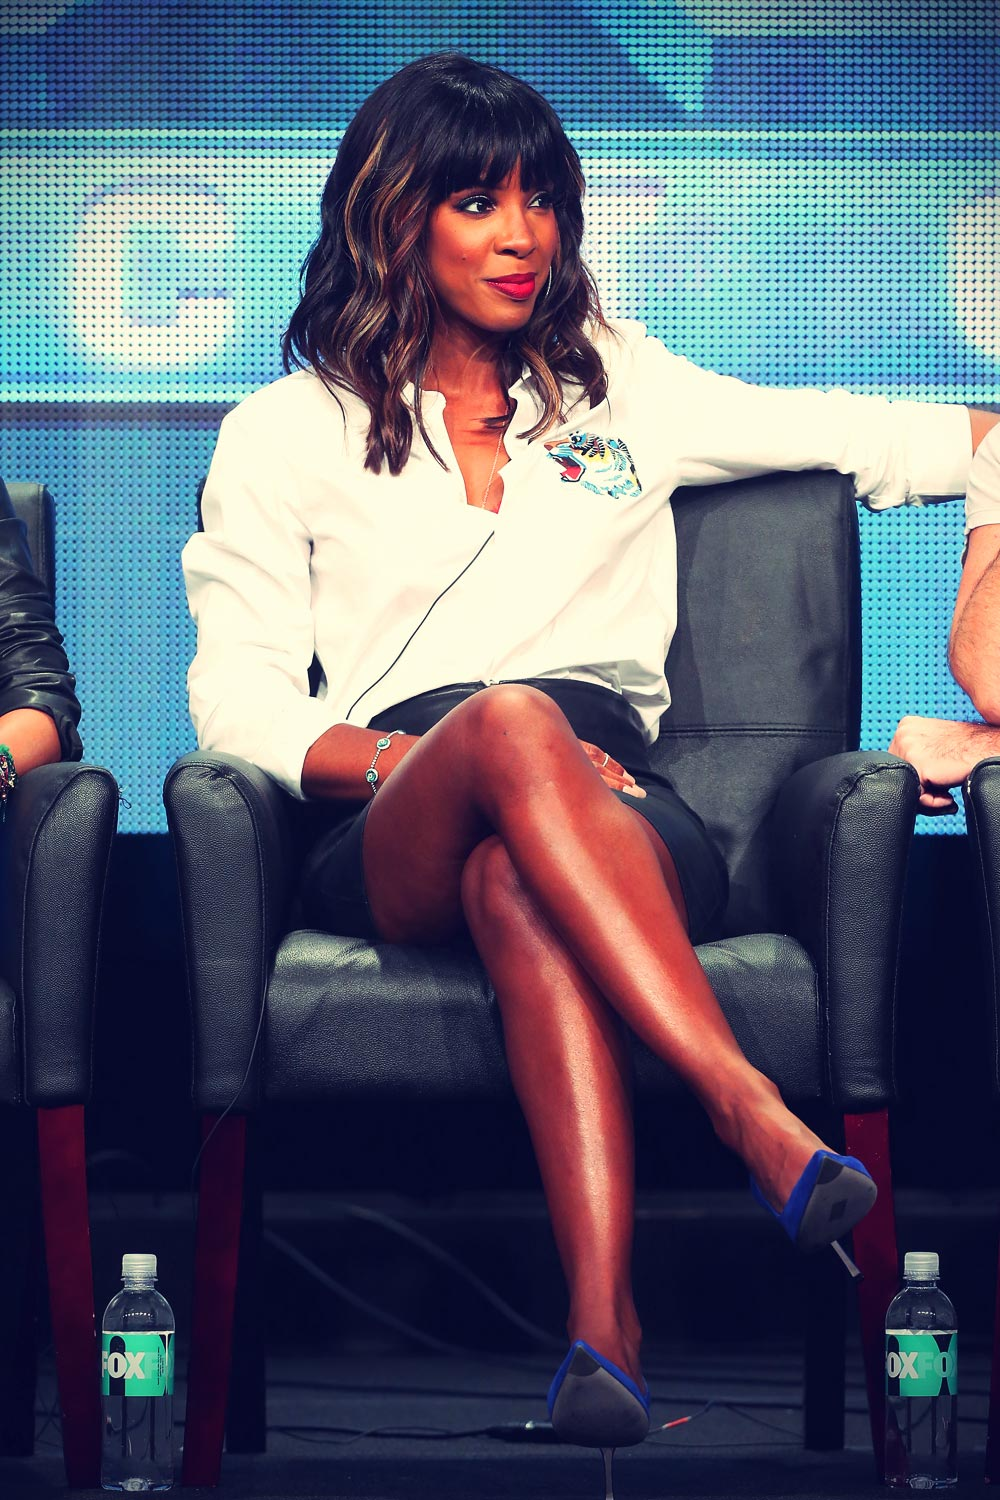 Kelly Rowland & Demi Lovato during the The X Factor panel discussion